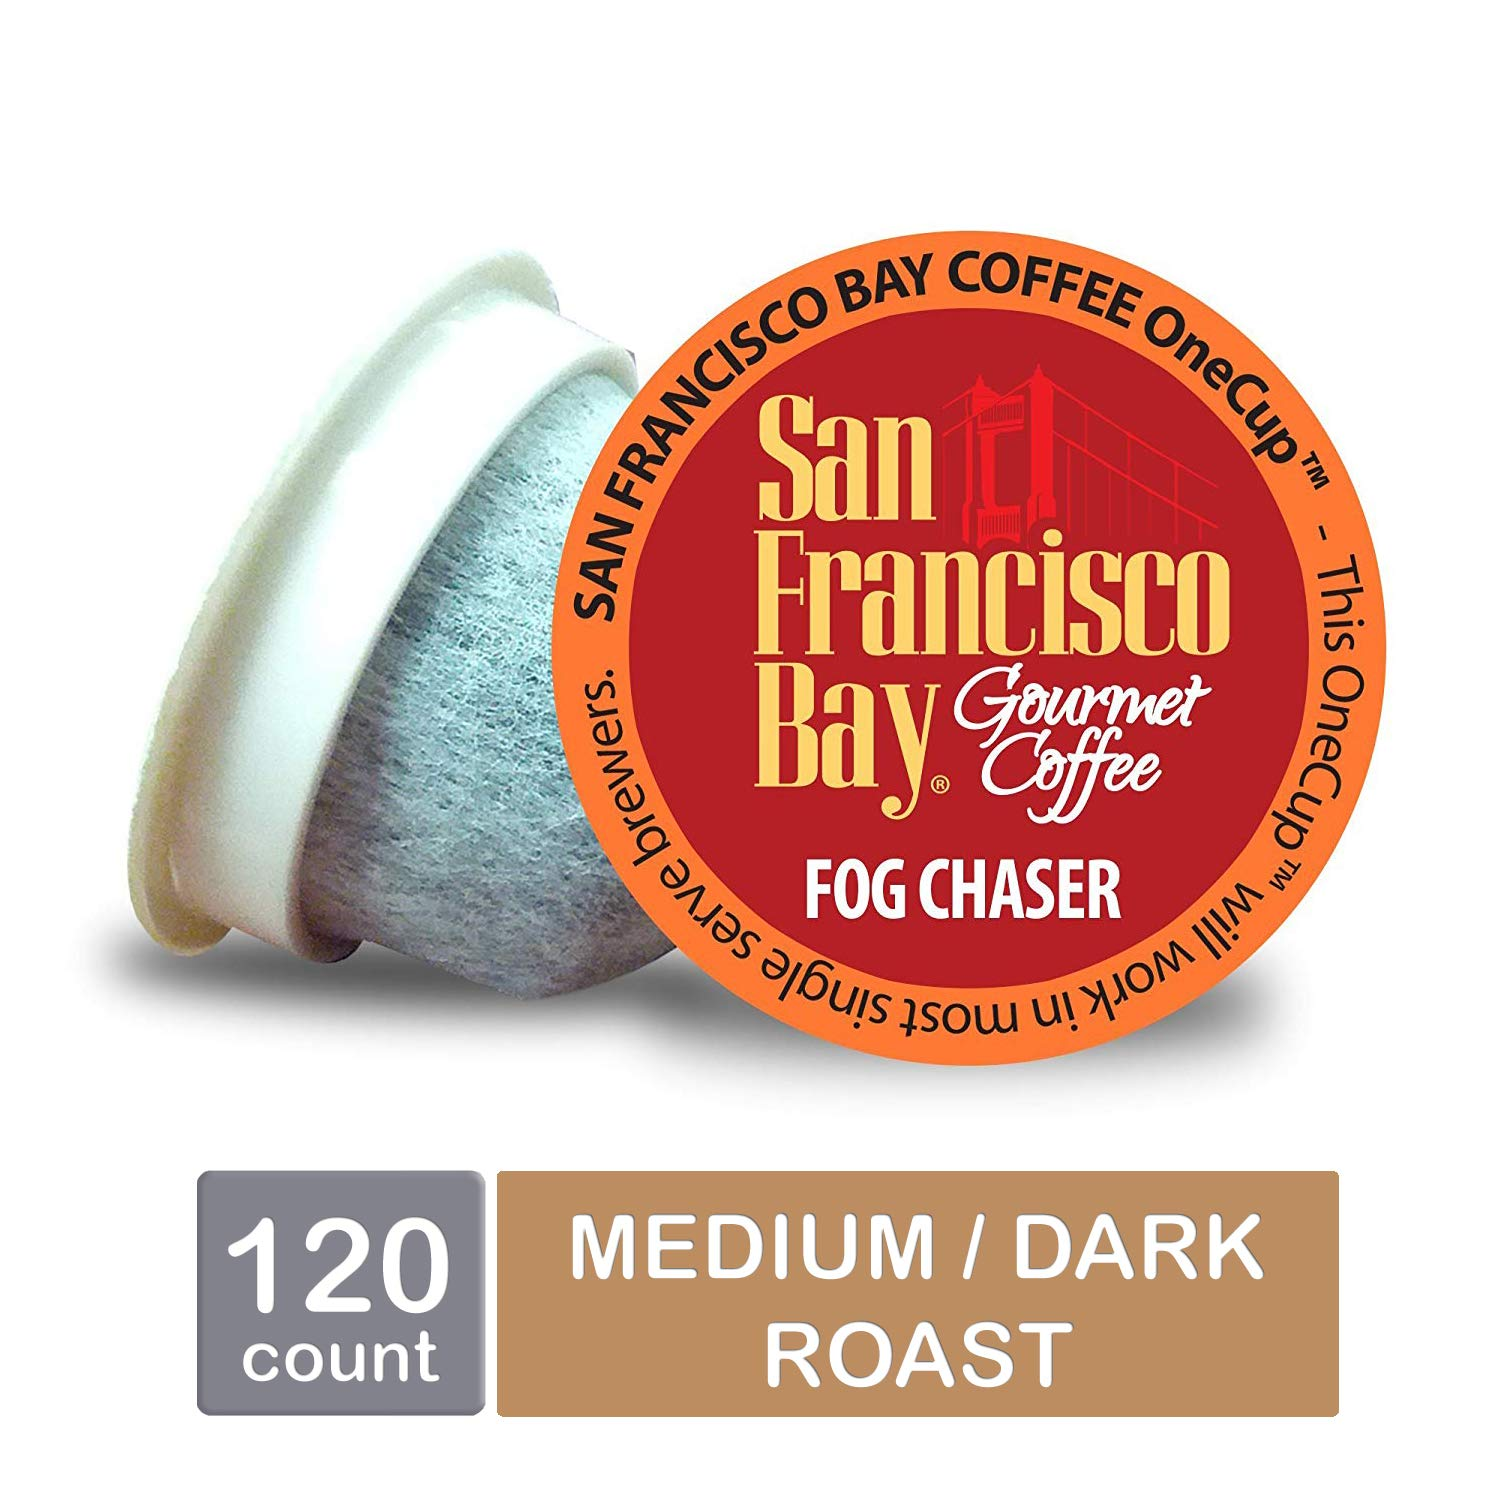 San Francisco Bay OneCup, Fog Chaser, Single Serve Coffee K-Cup Pods (120 Count) Keurig Compatible by SAN FRANCISCO BAY